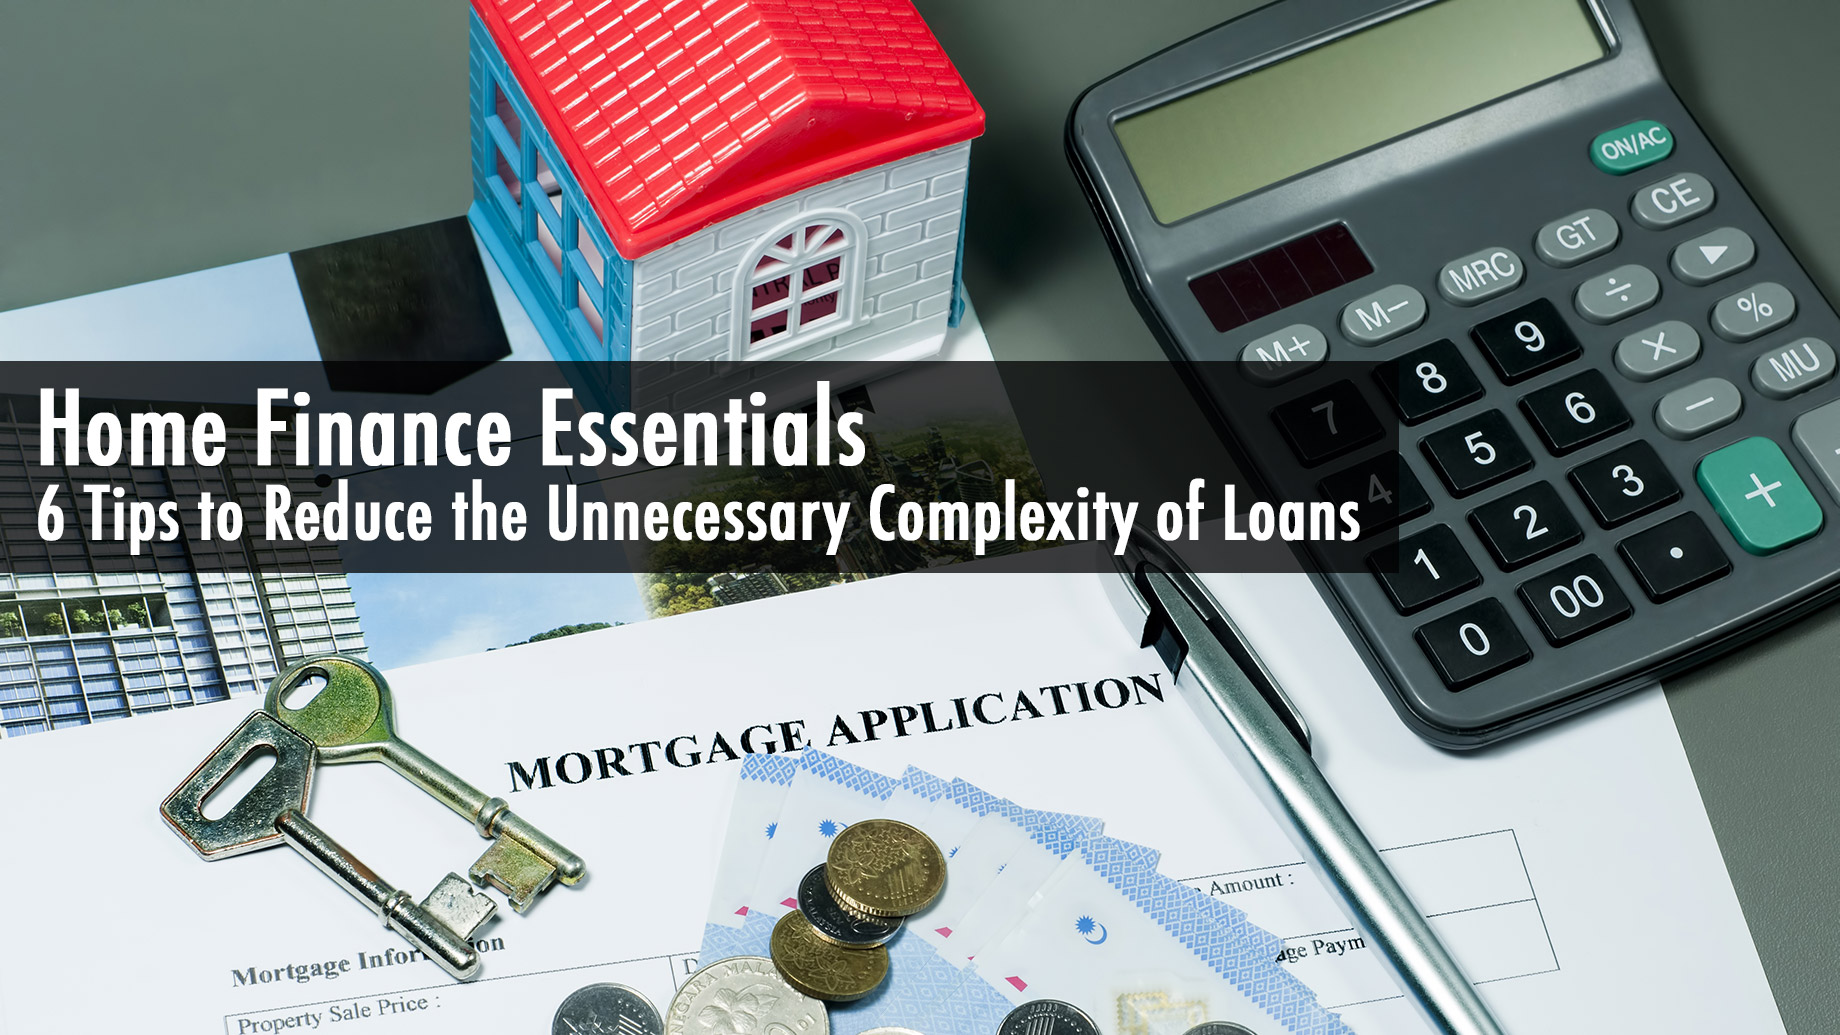 Home Finance Essentials - 6 Tips to Reduce the Unnecessary Complexity of Loans